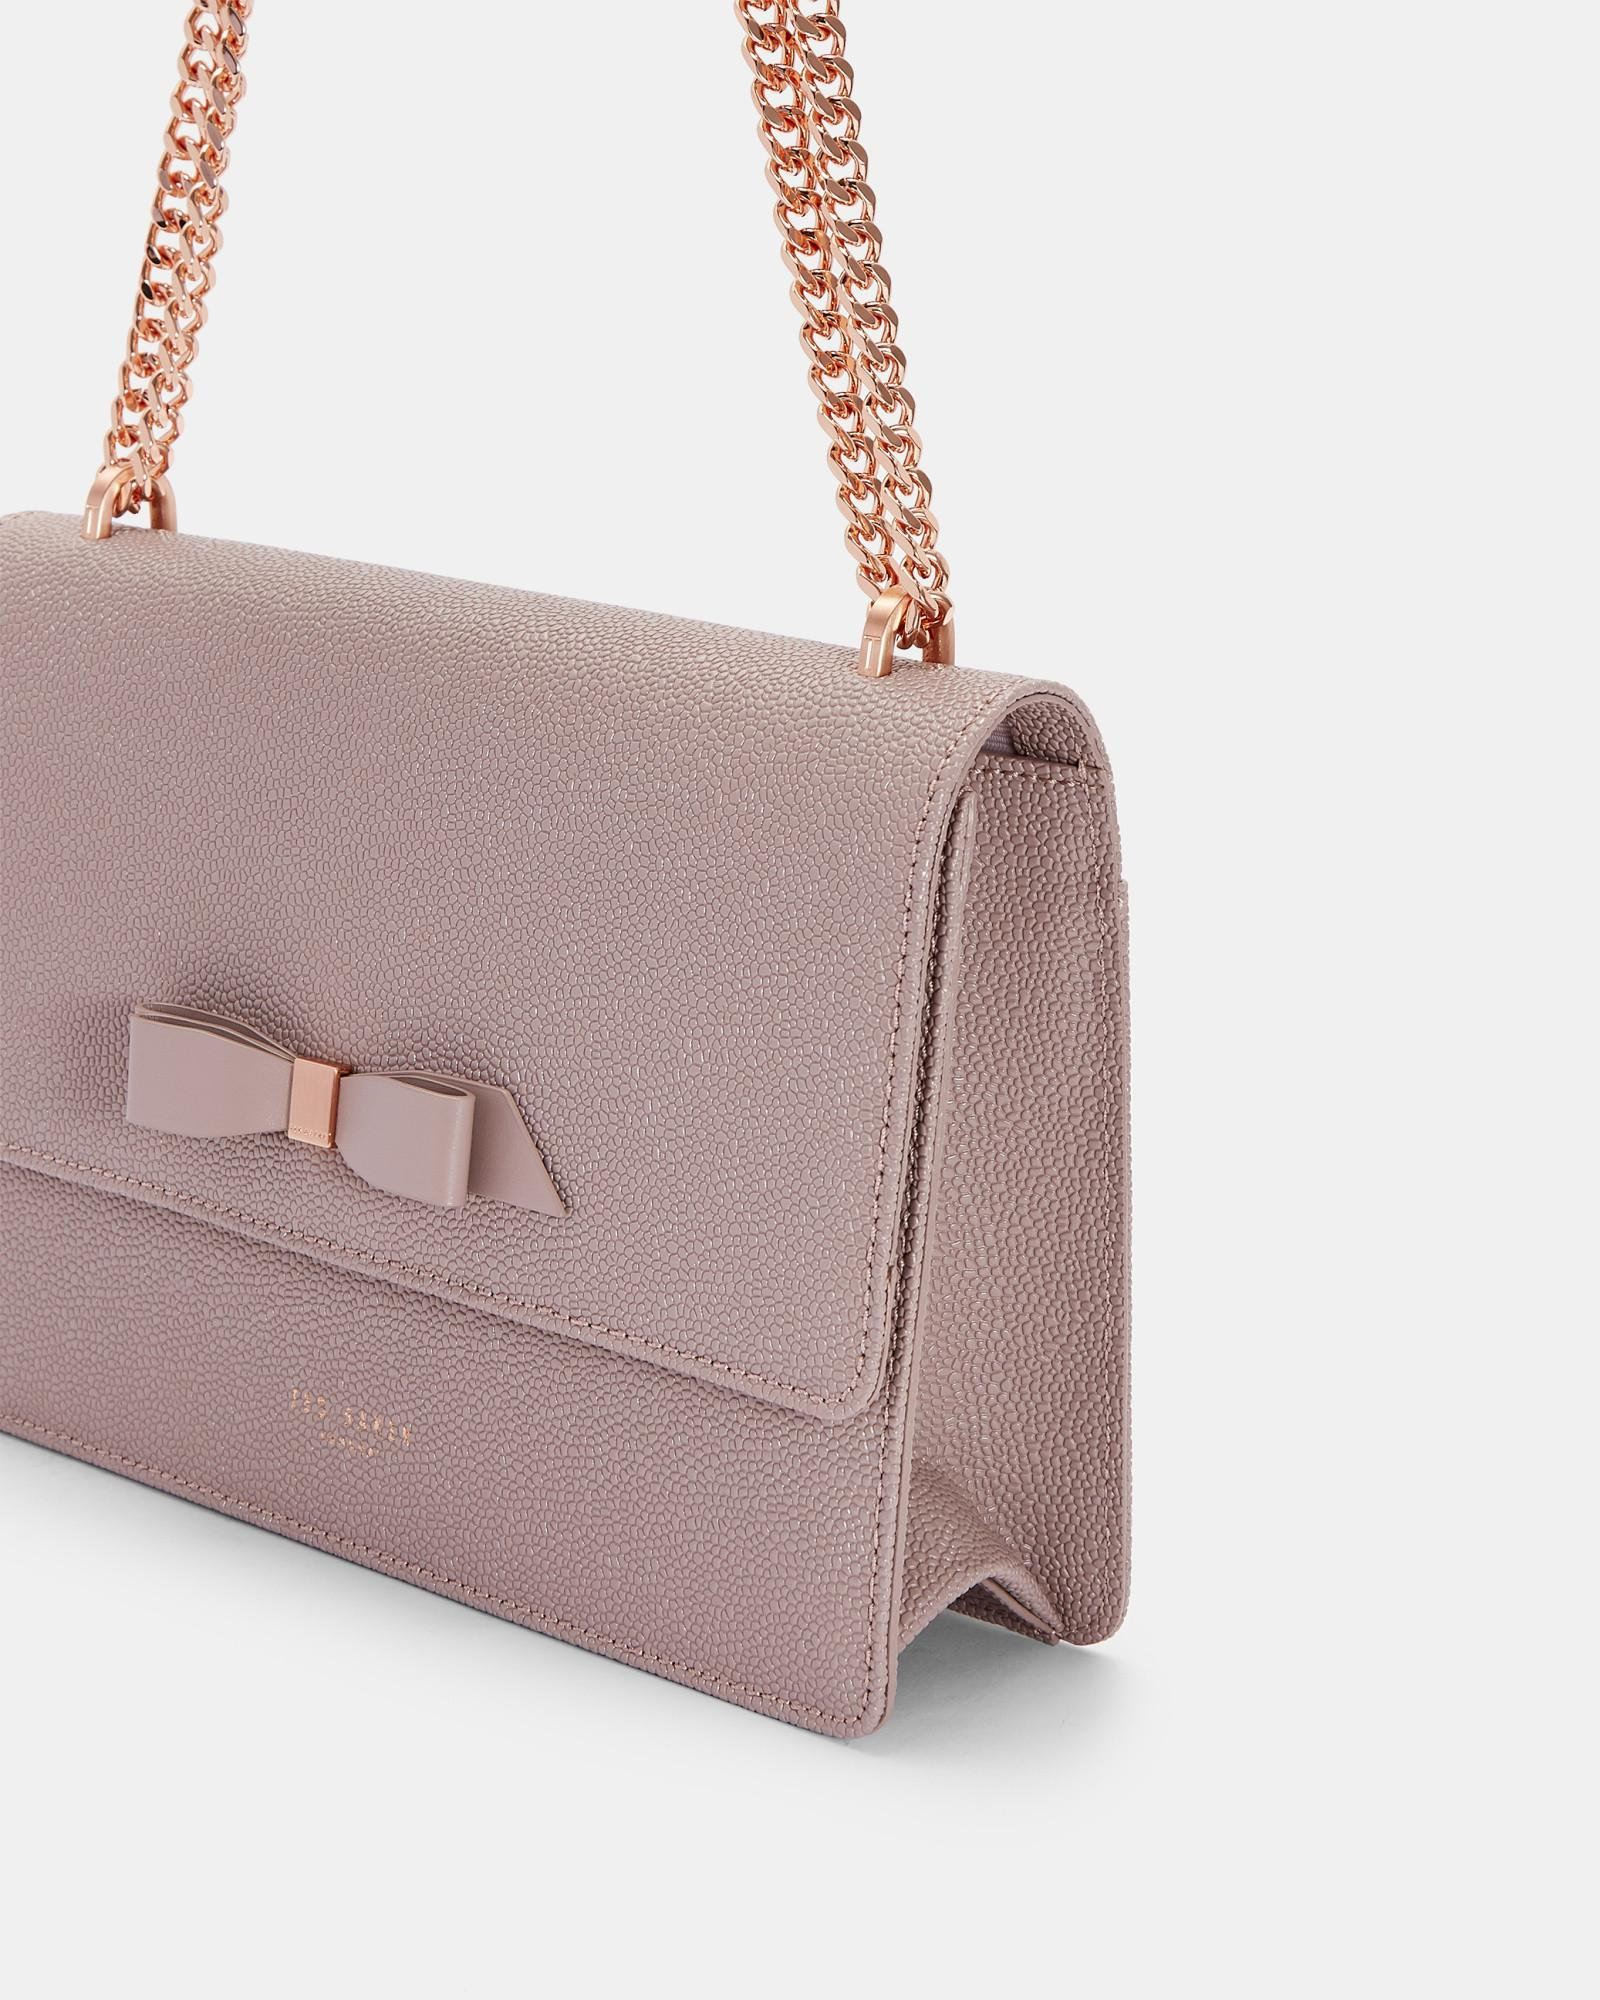 96b895c77 Ted Baker Bow Detail Leather Cross Body Bag in Pink - Lyst